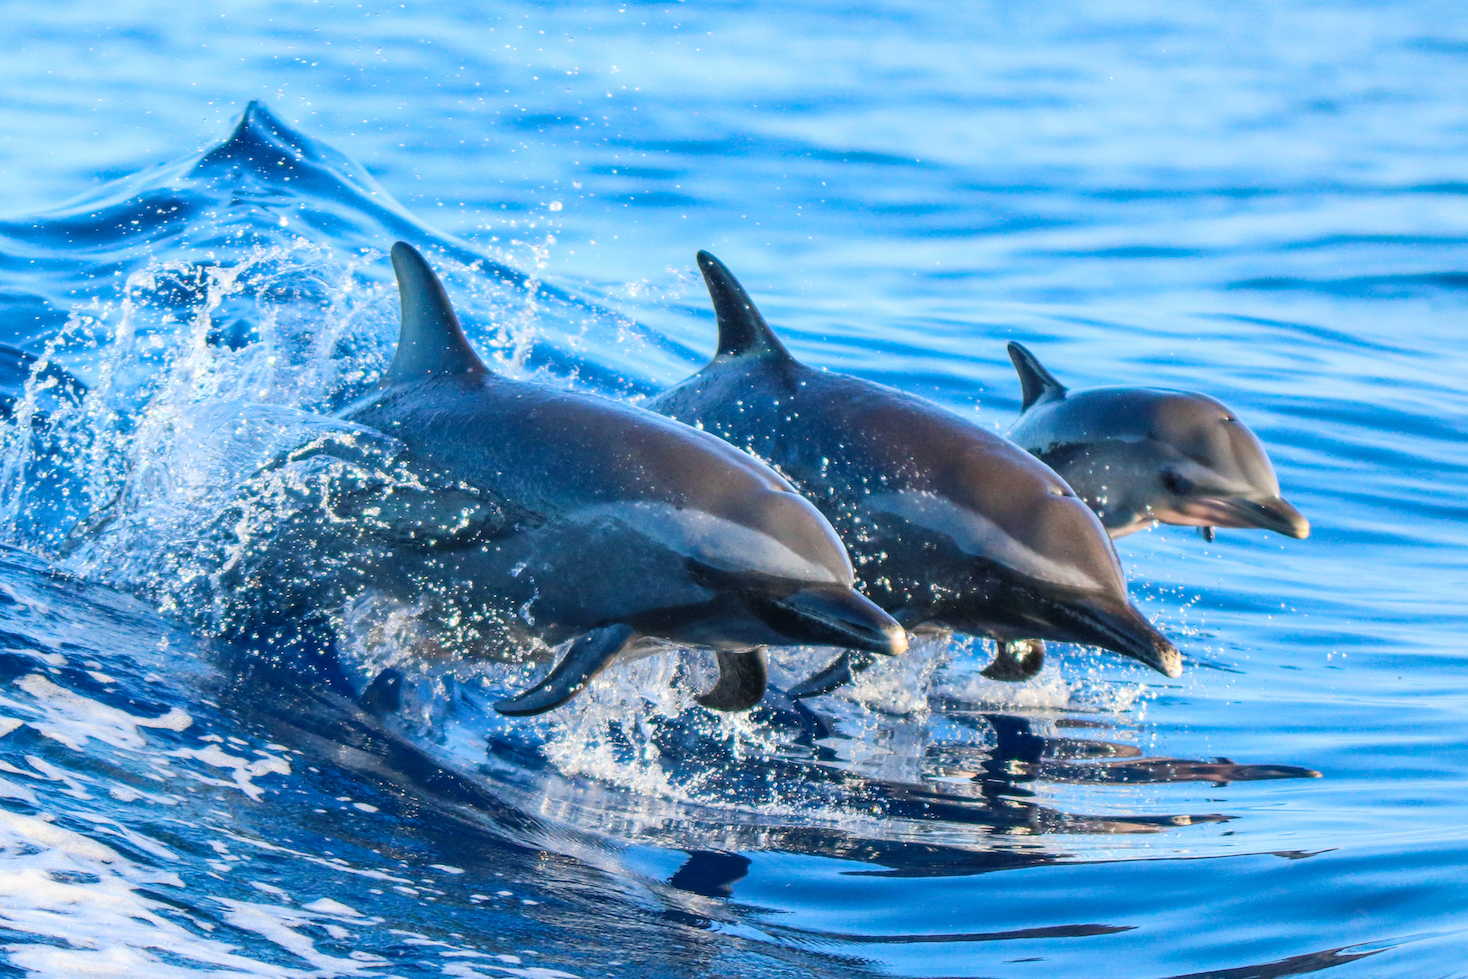 Slow development could put young dolphins at risk of being separated from their mothers during pursuits by commercial tuna fishing fleets.